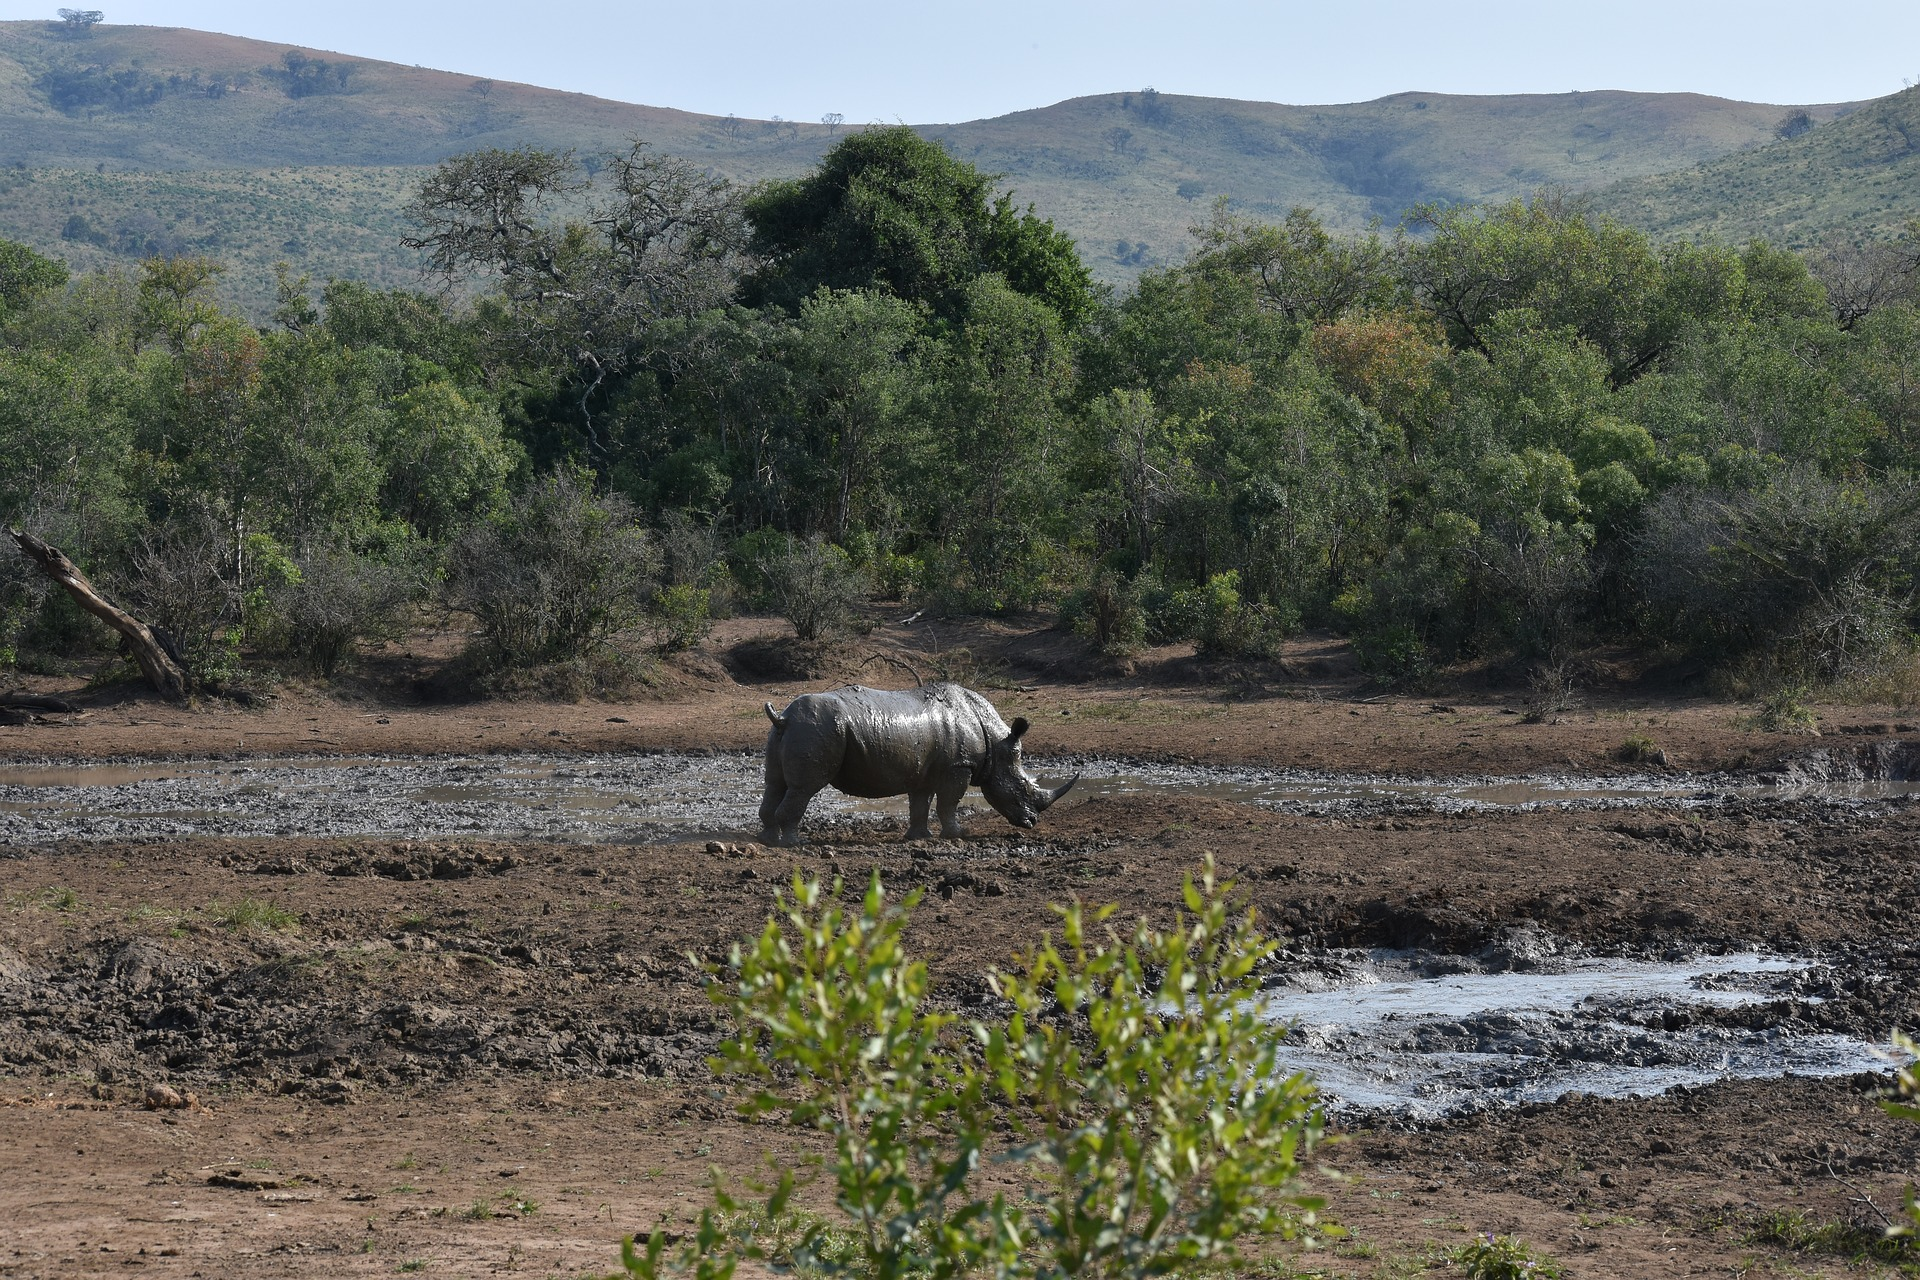 Black Rhino along a bank